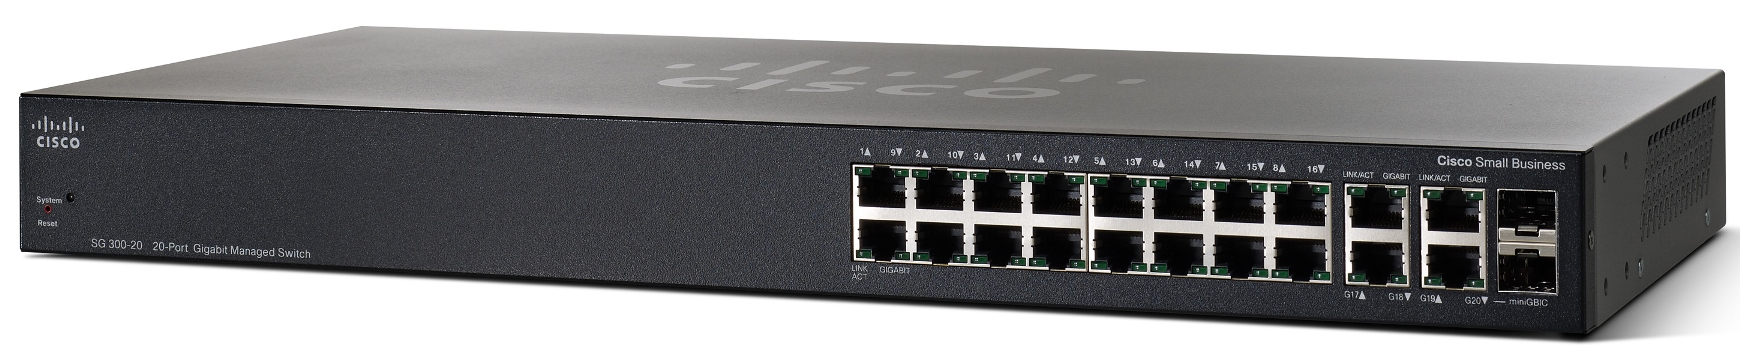 Cisco SRW2016-K9 SG300-20 20-port Gigabit Managed Switch, zam: SG350-20-K9-EU